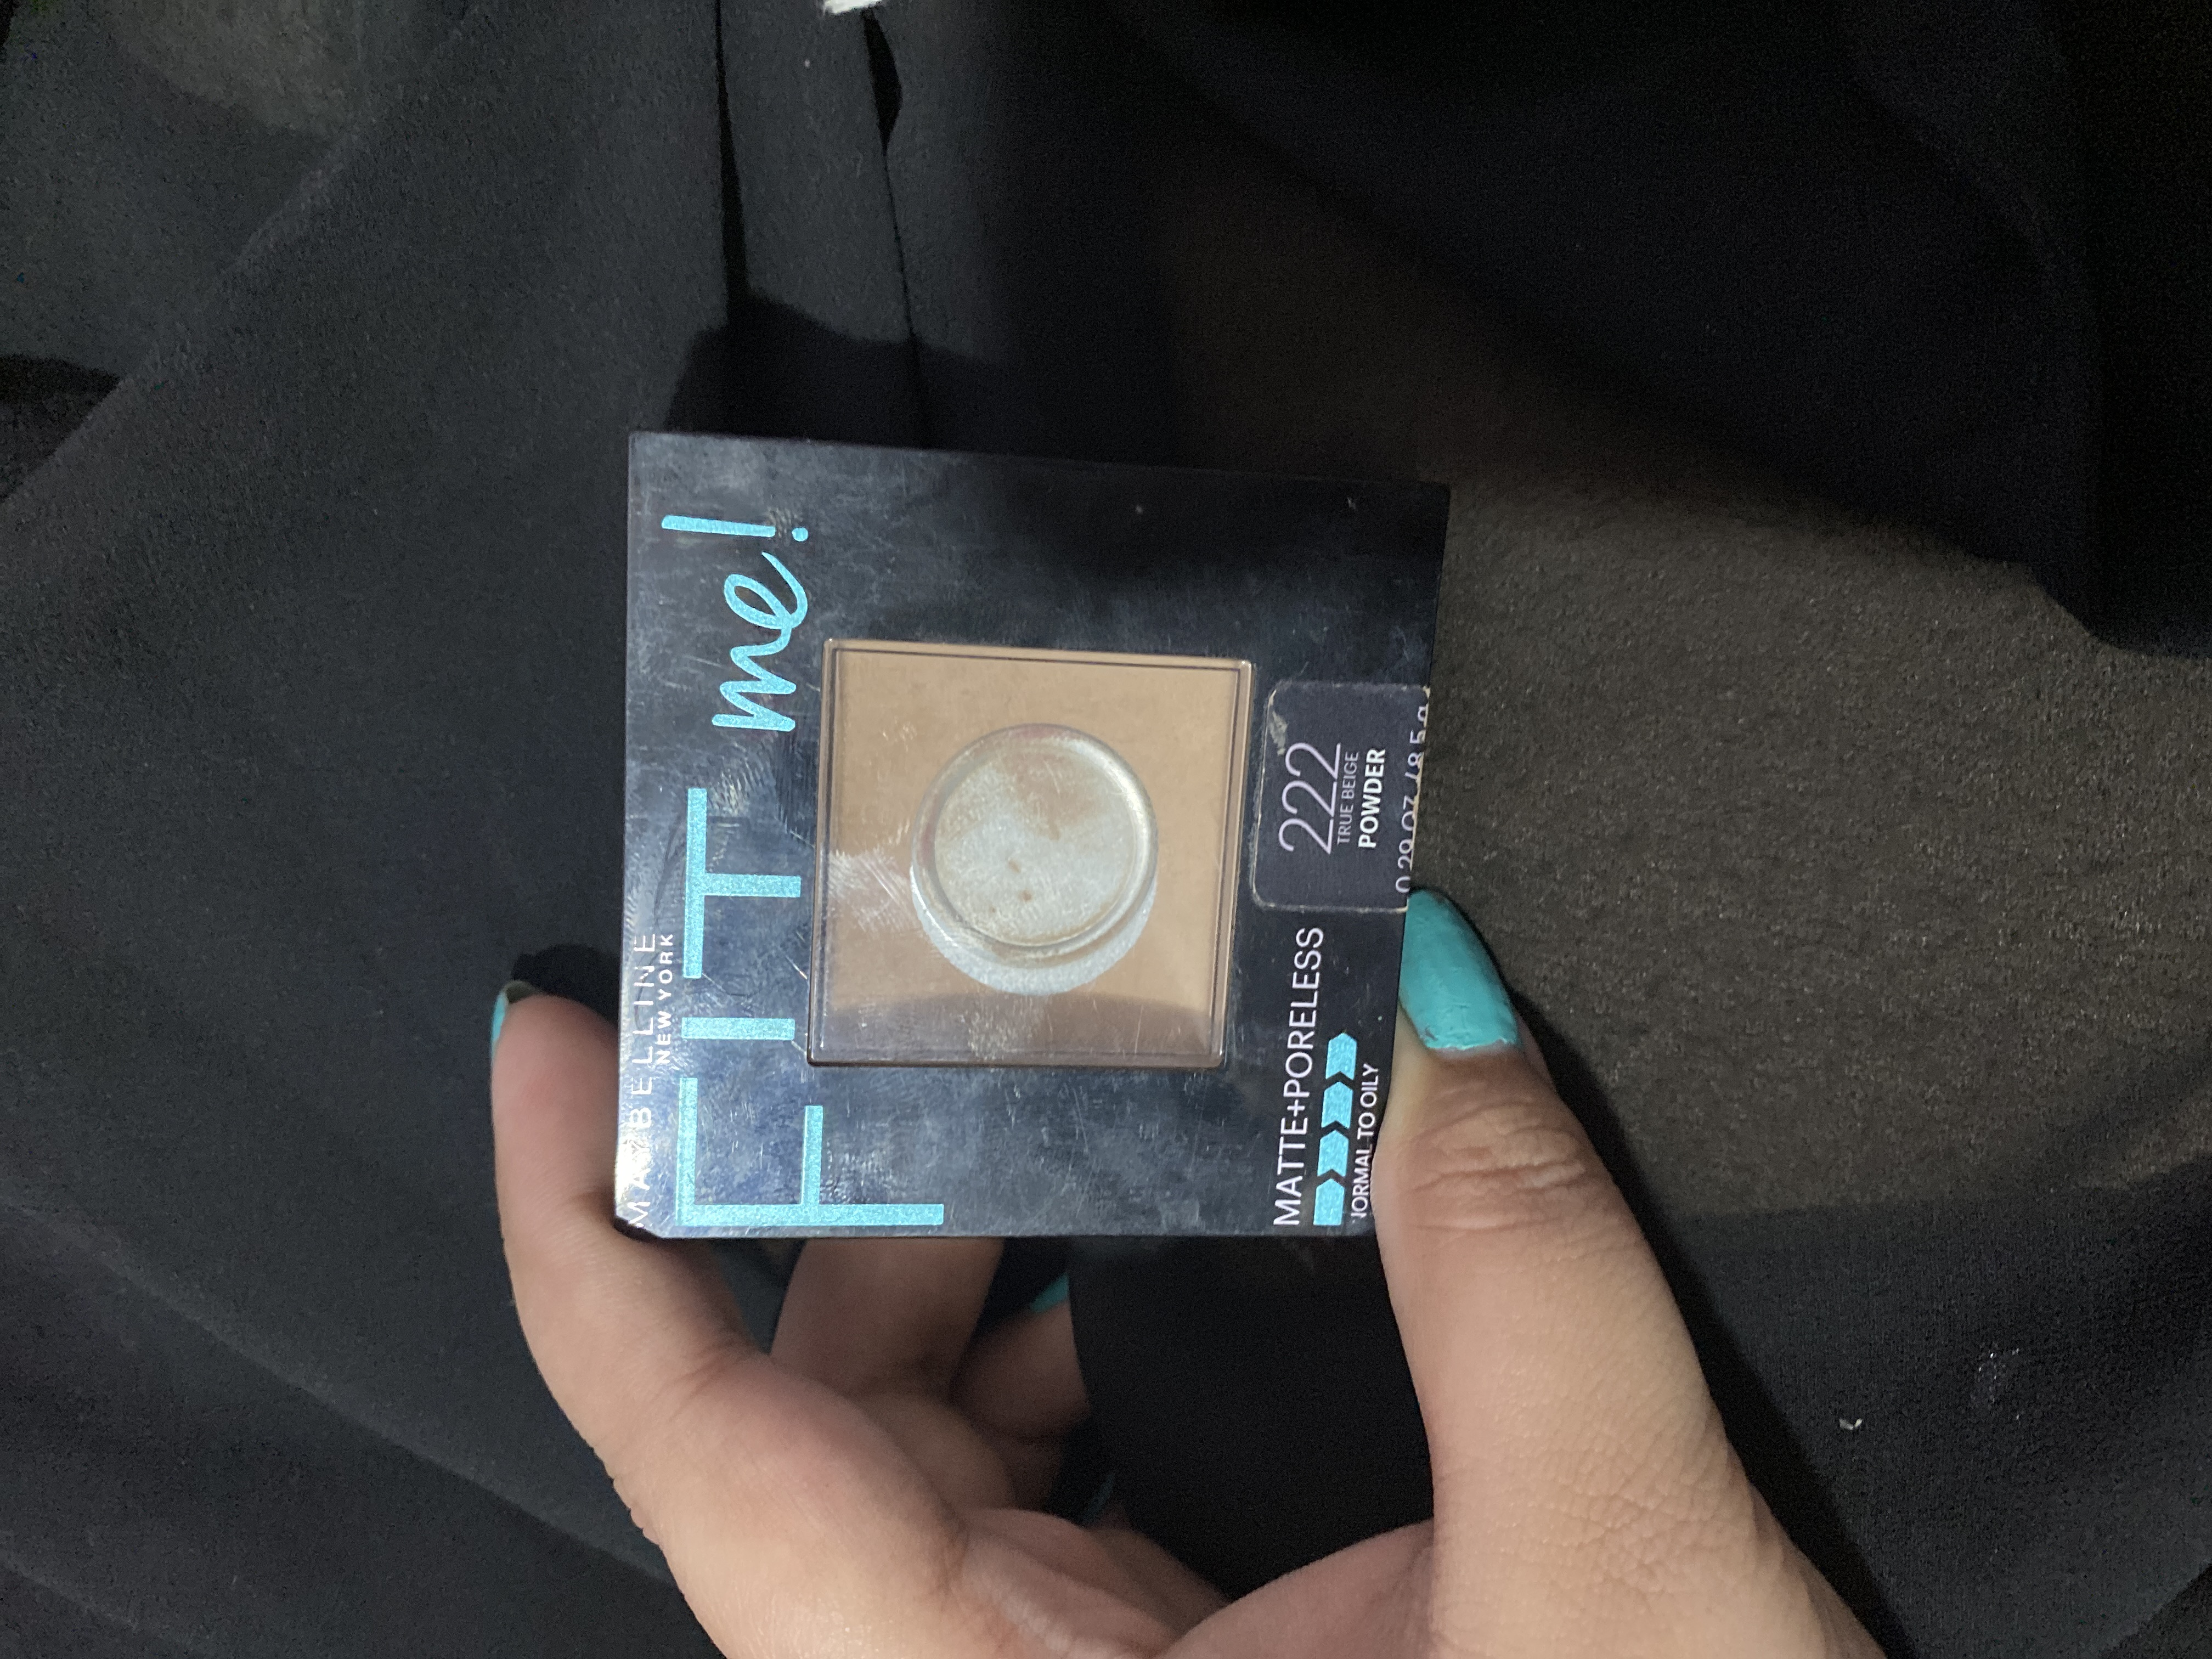 Maybelline Fit Me Matte And Poreless Powder-All in one compact-By shachi_sharma-1